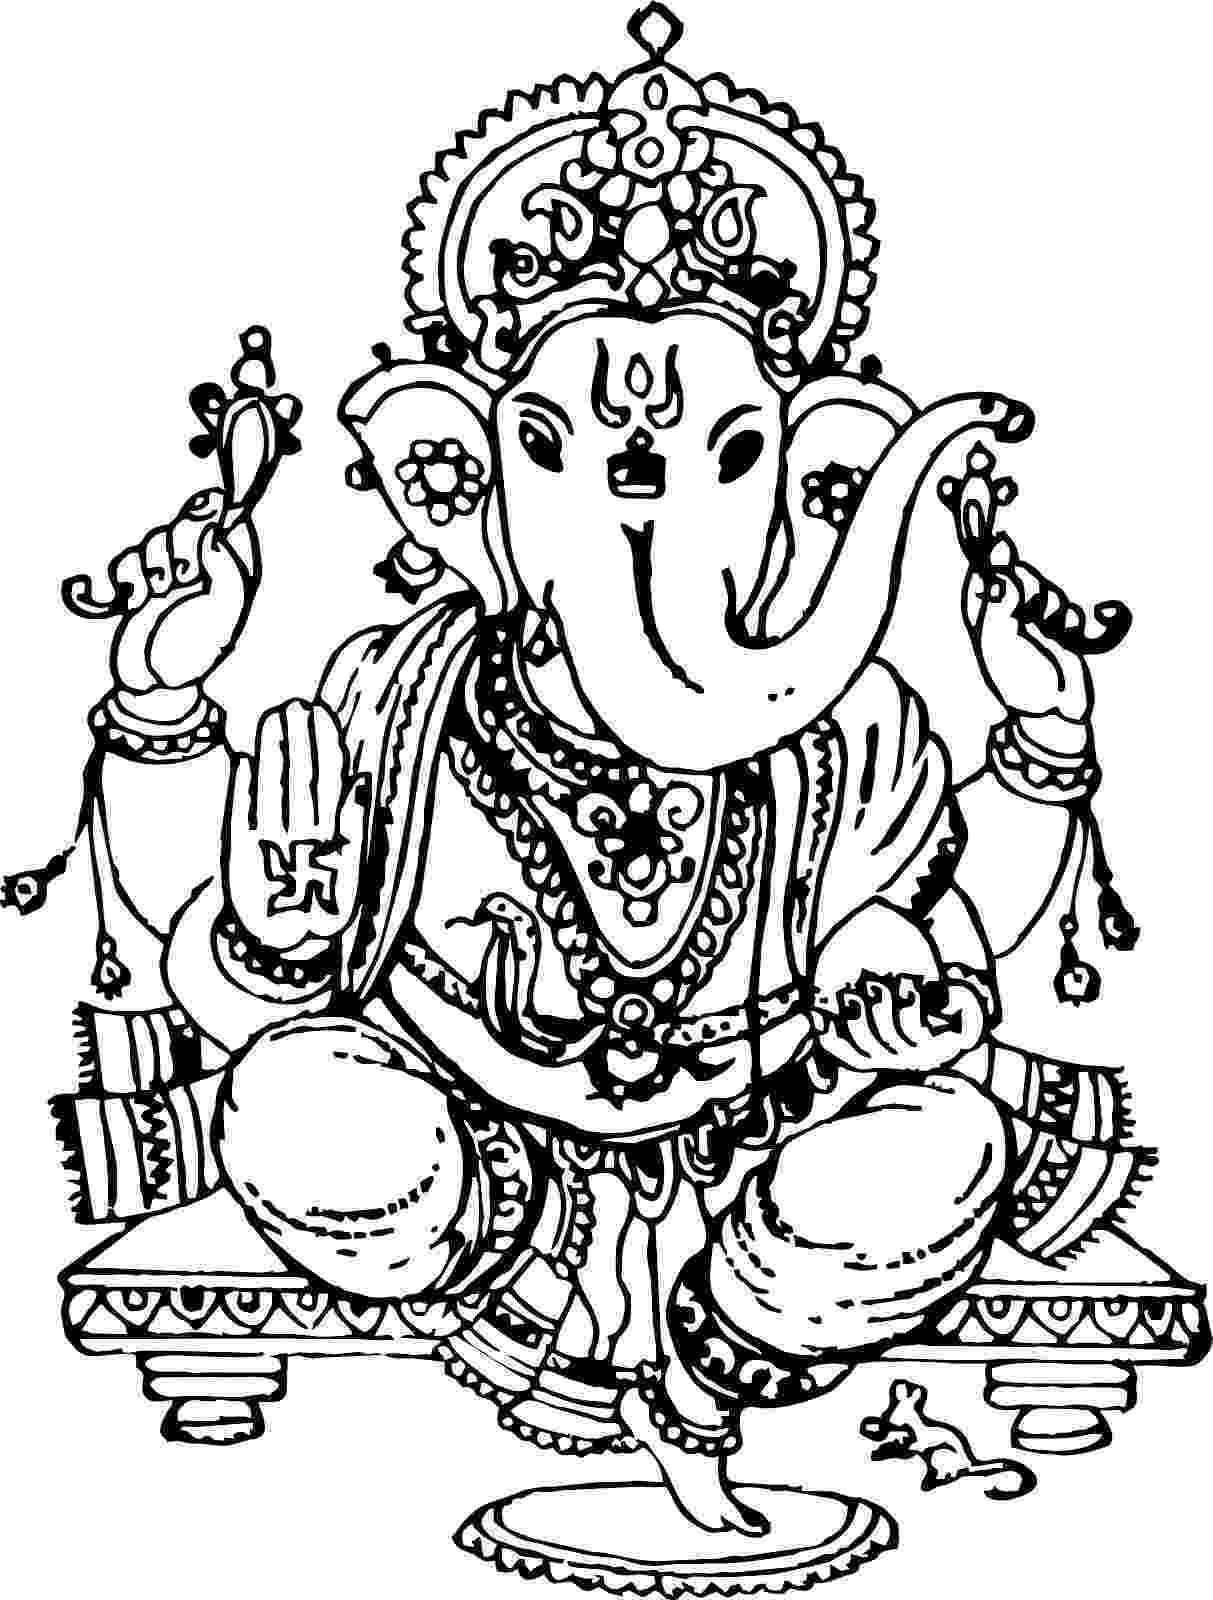 lord shiva colouring pages shiva coloring page free printable coloring pages colouring pages lord shiva